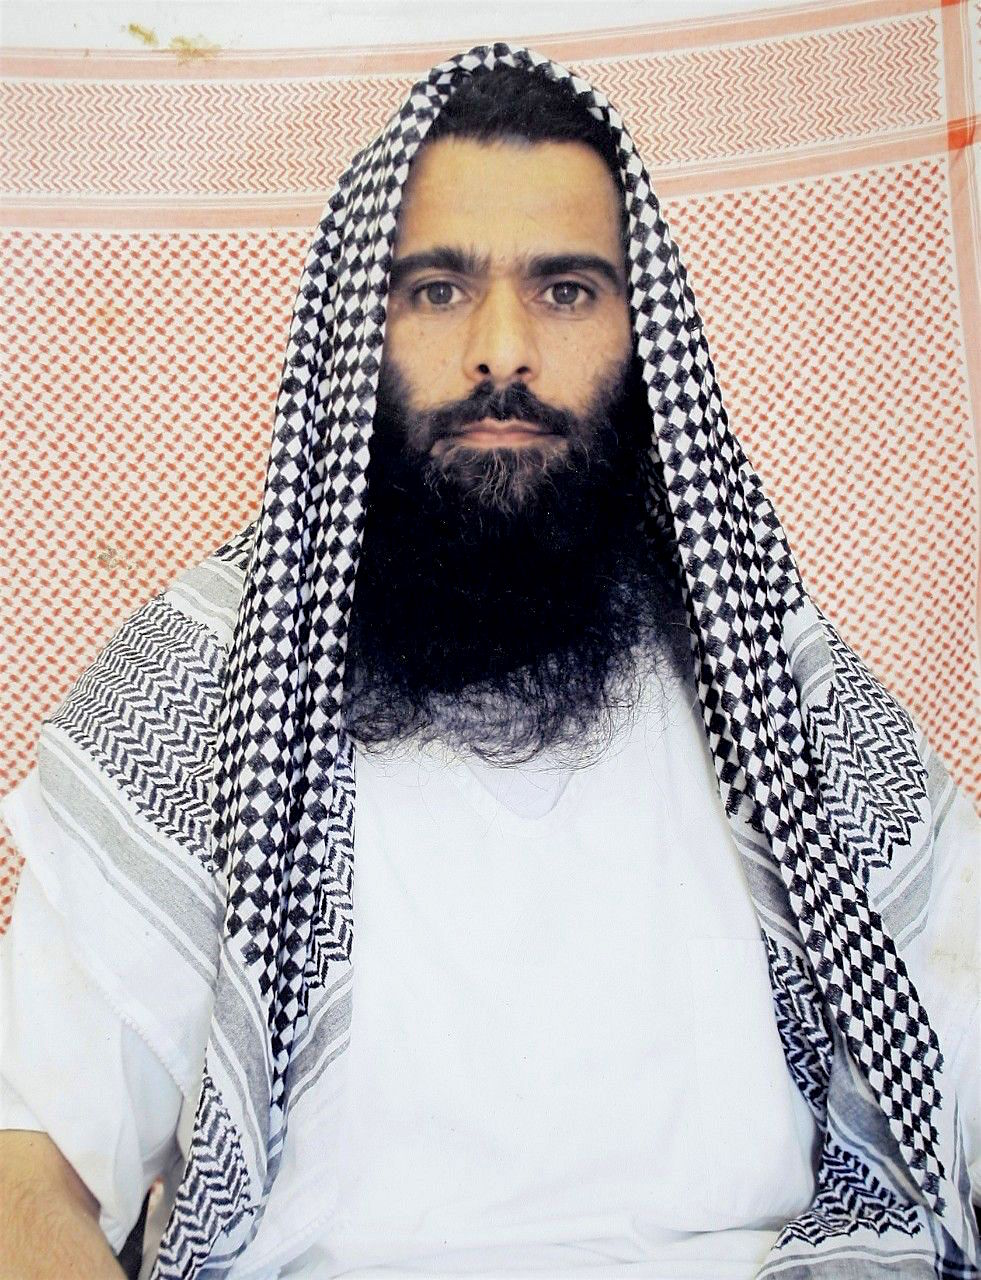 "Mohammad Rahim, an Afghan prisoner at Guantanamo, regarded as a ""high-value detainee,"" in photo taken by representatives of the International Committee of the Red Cross, who made it available to his family, who, in turn, made it publicly available."